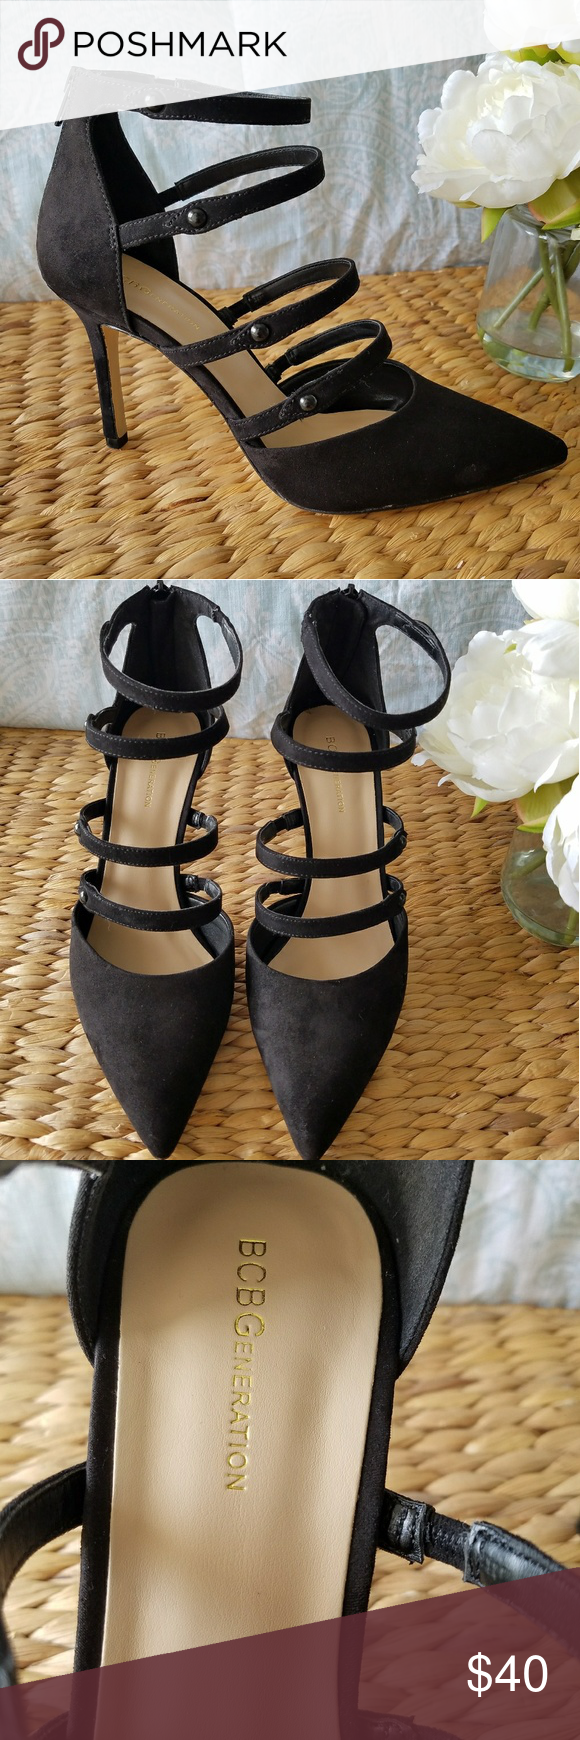 BCBGeneration black strap heels Worn just once, they are in perfect condition. BCBGeneration Shoes Heels